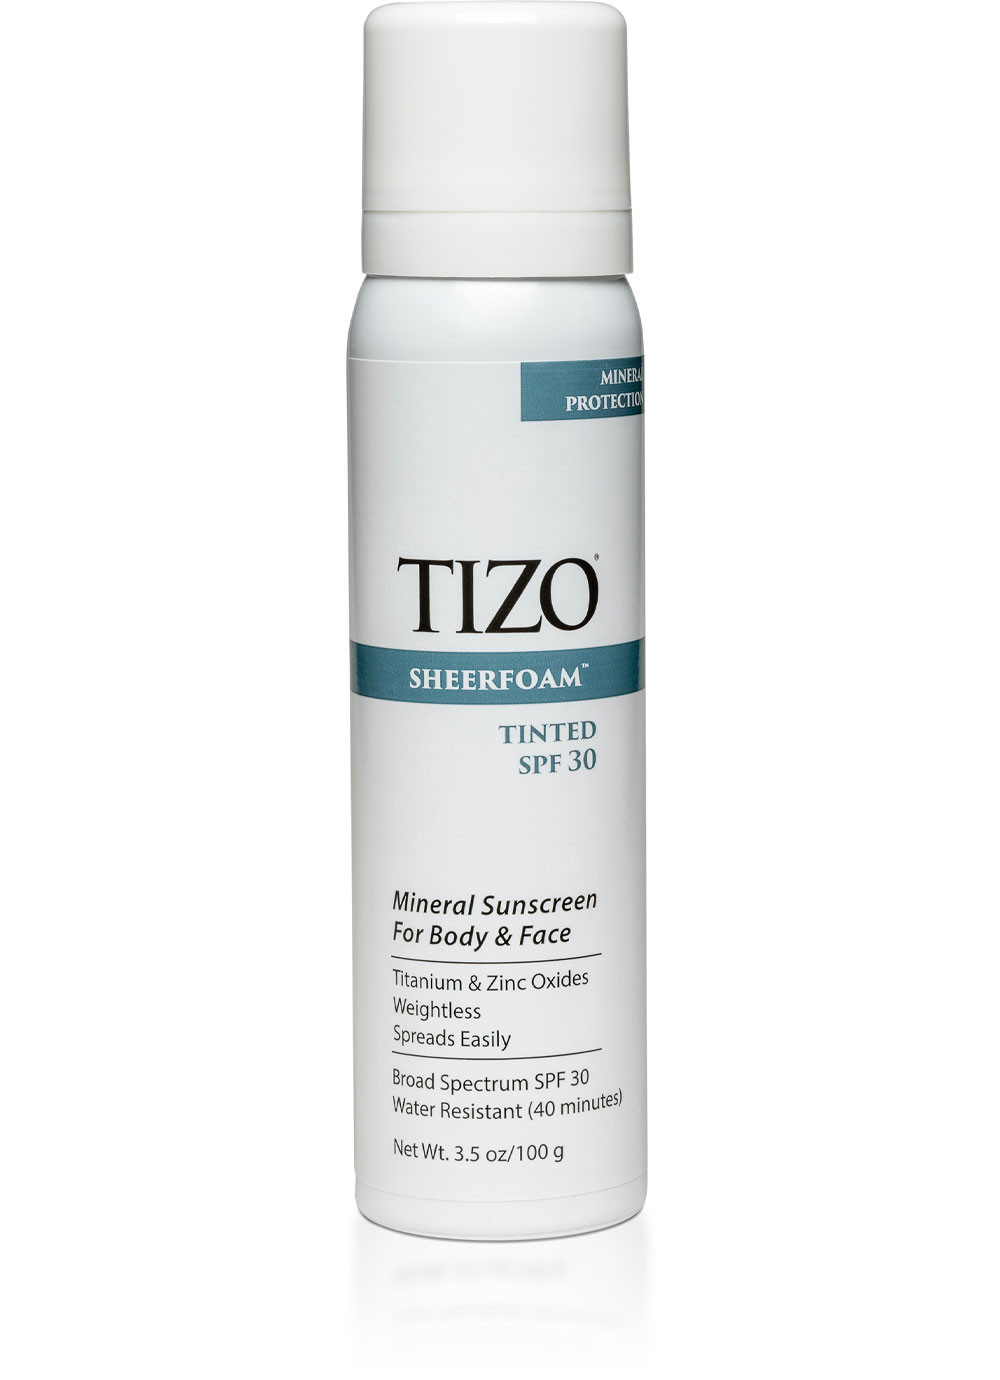 Tizo Sheerfoam Sunscreen